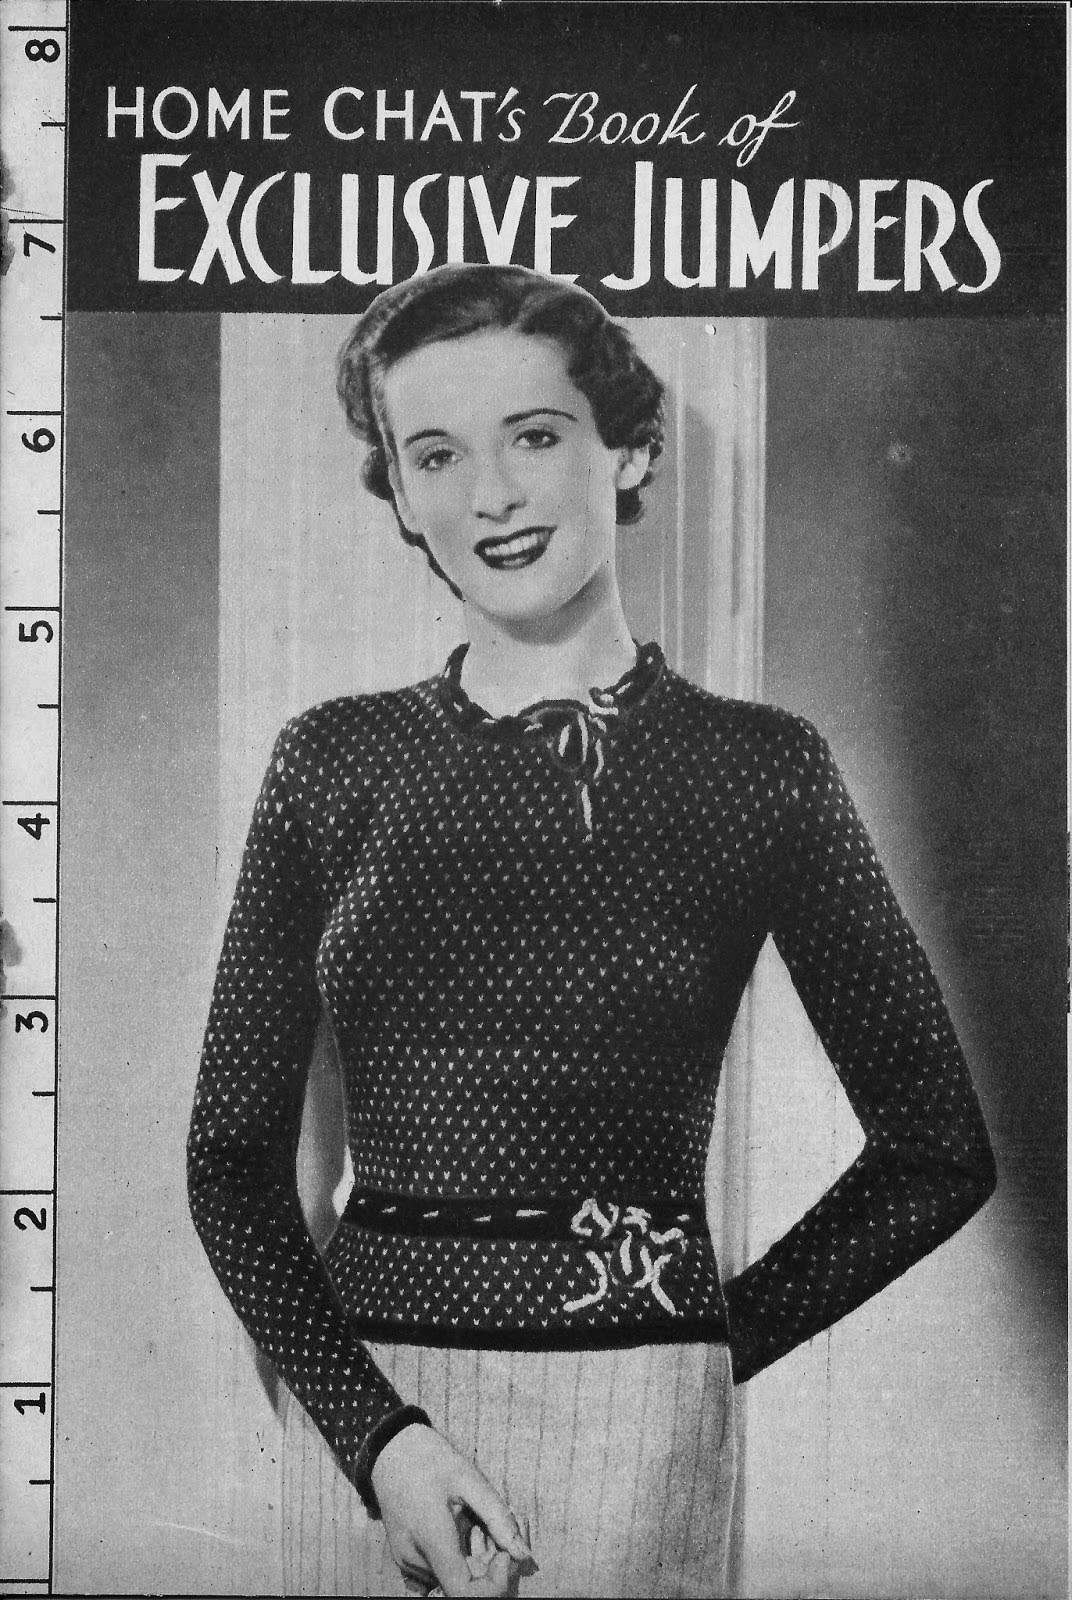 1930s Knitting Patterns : The Vintage Pattern Files: 1930s Knitting - Home Chats Exclusive Ju...